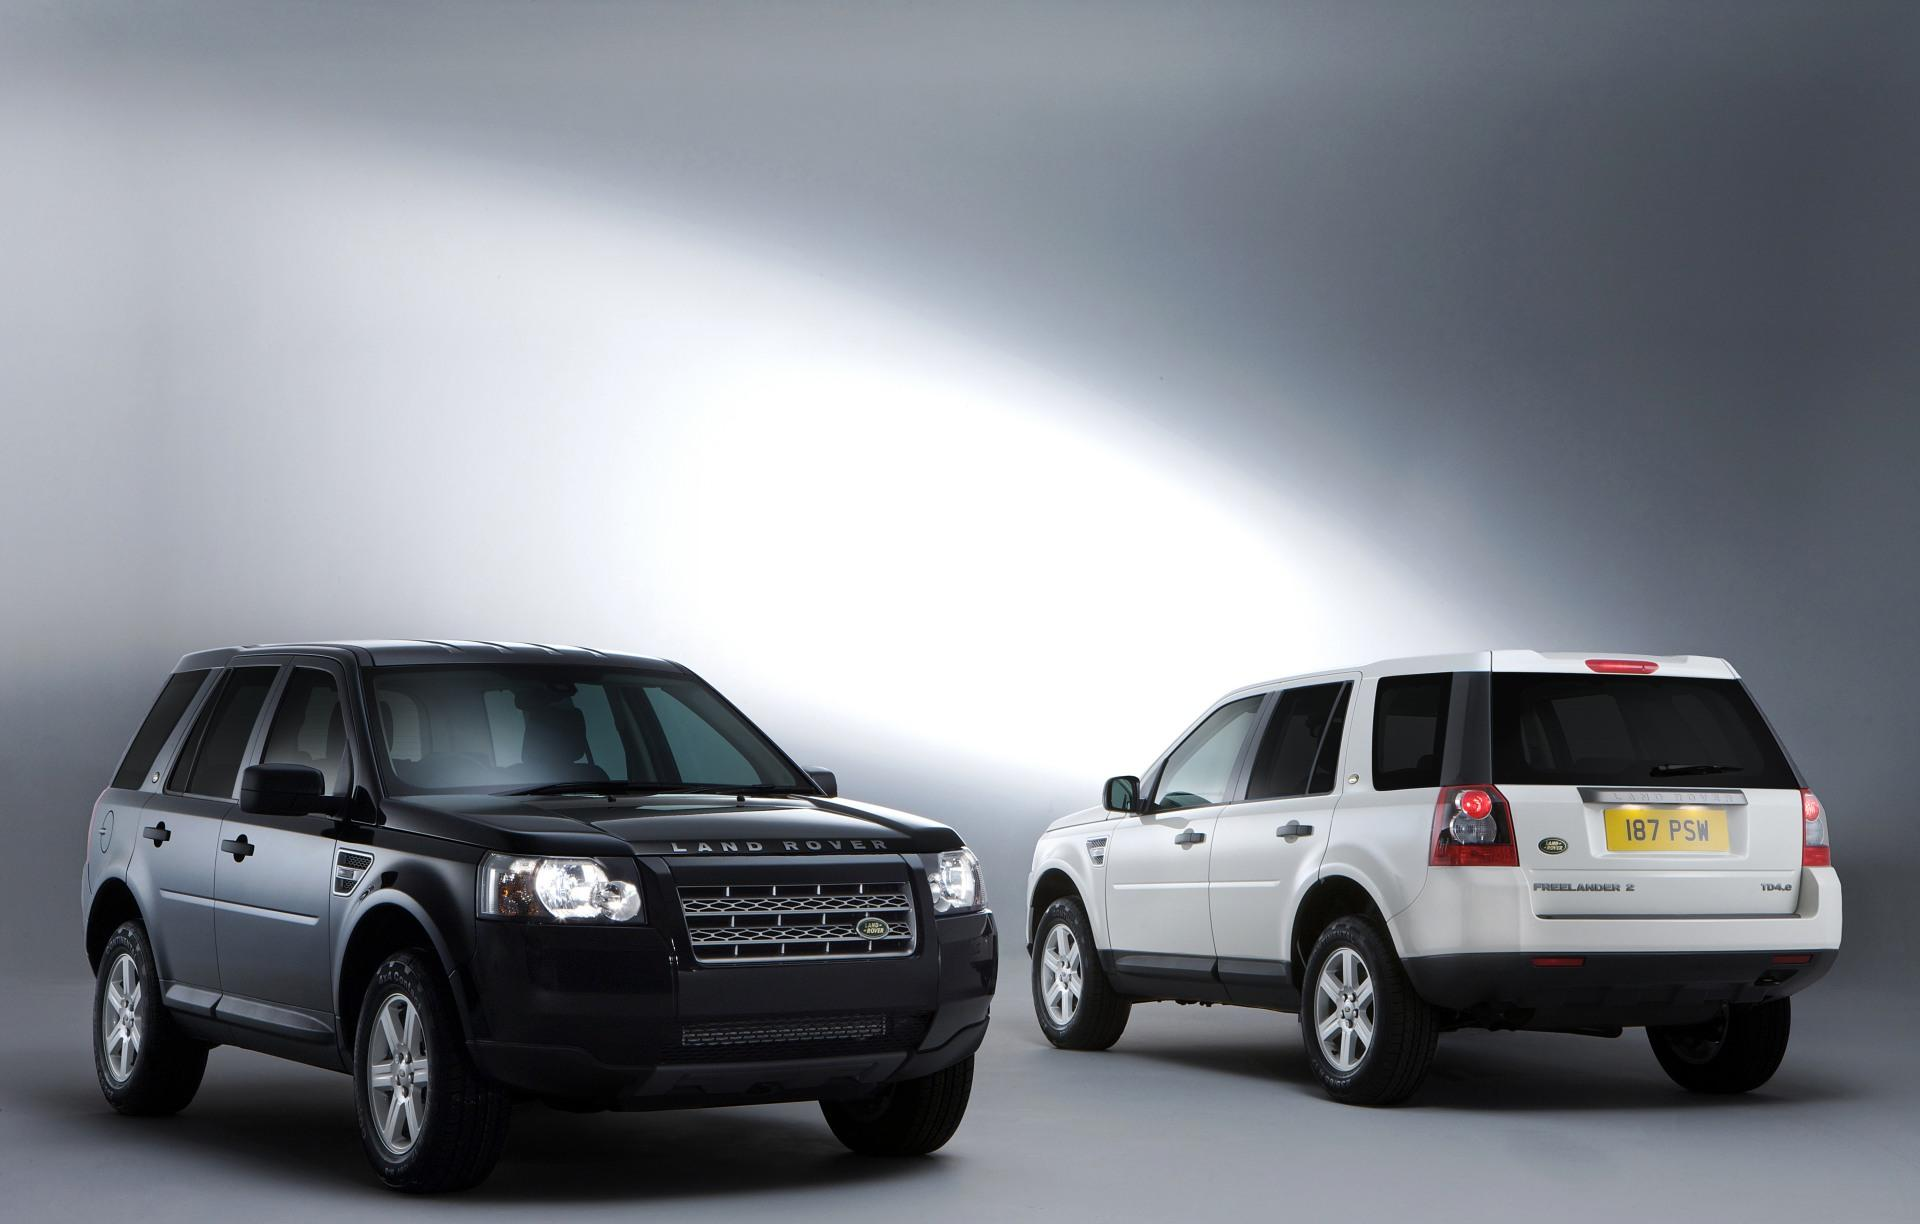 Land Rover Freelander 2 White & Black Edition pictures and wallpaper